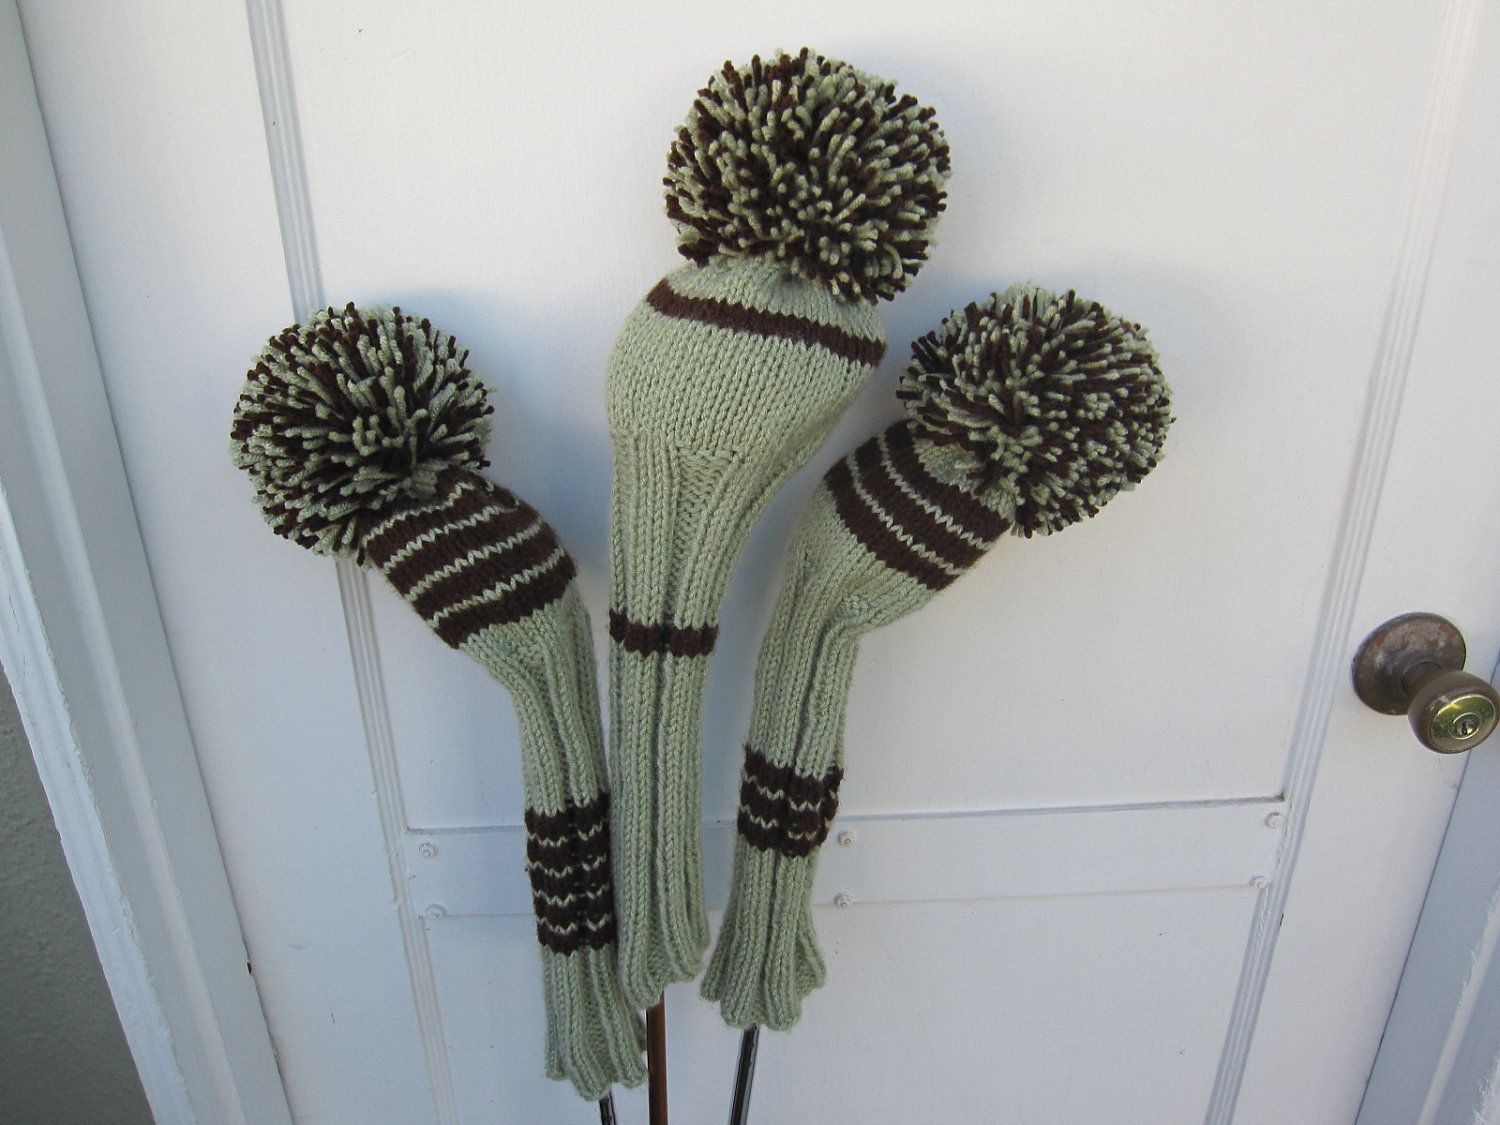 Fun idea for pom poms and knitting hand knit golf club head fun idea for pom poms and knitting hand knit golf club head covers set of bankloansurffo Gallery